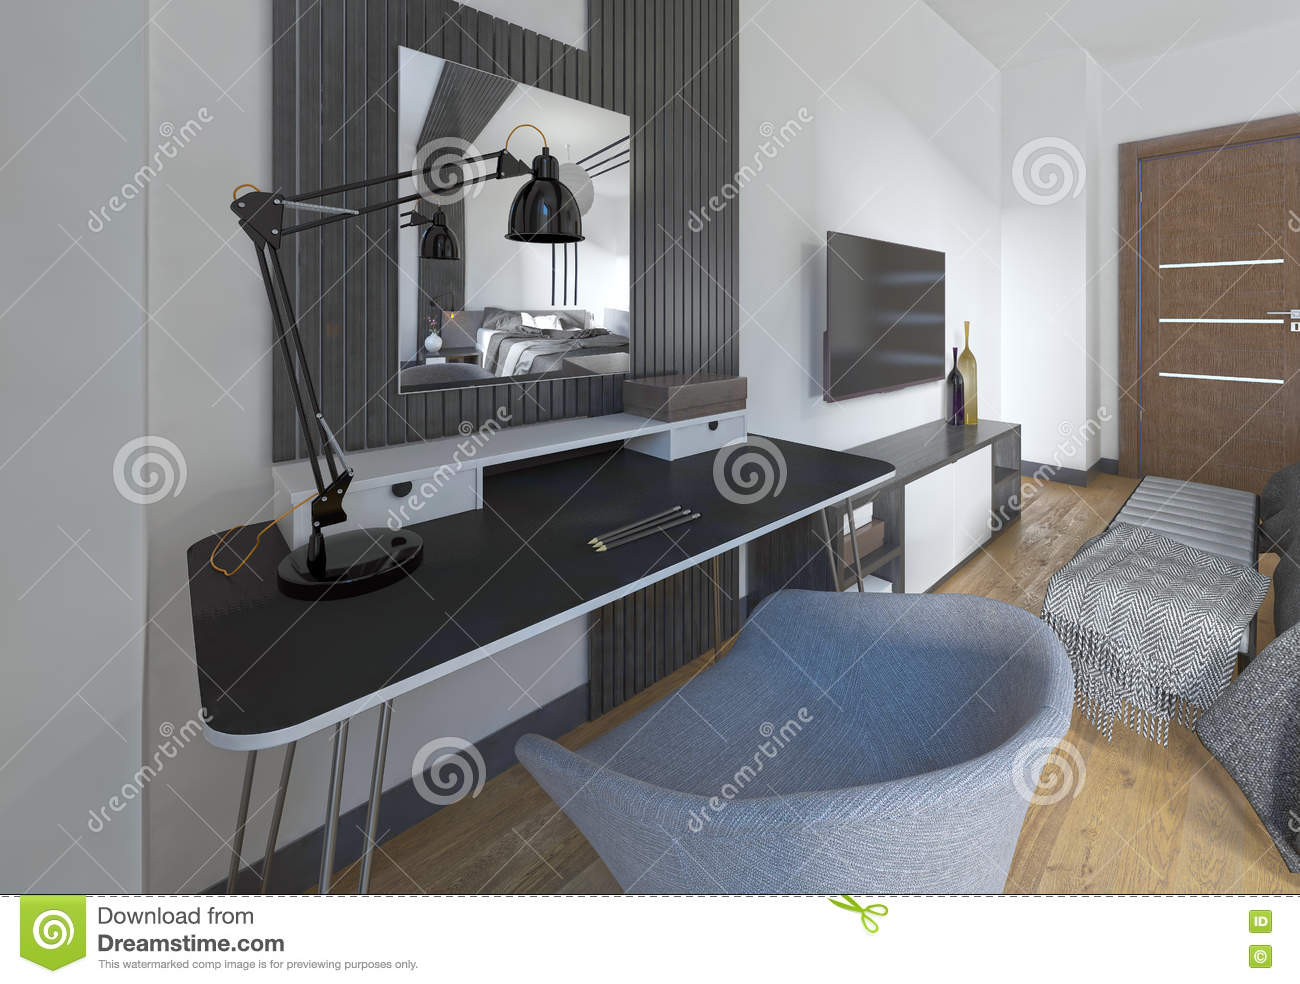 bedroom dressing table chair teak steamer chairs and in a modern stock illustration